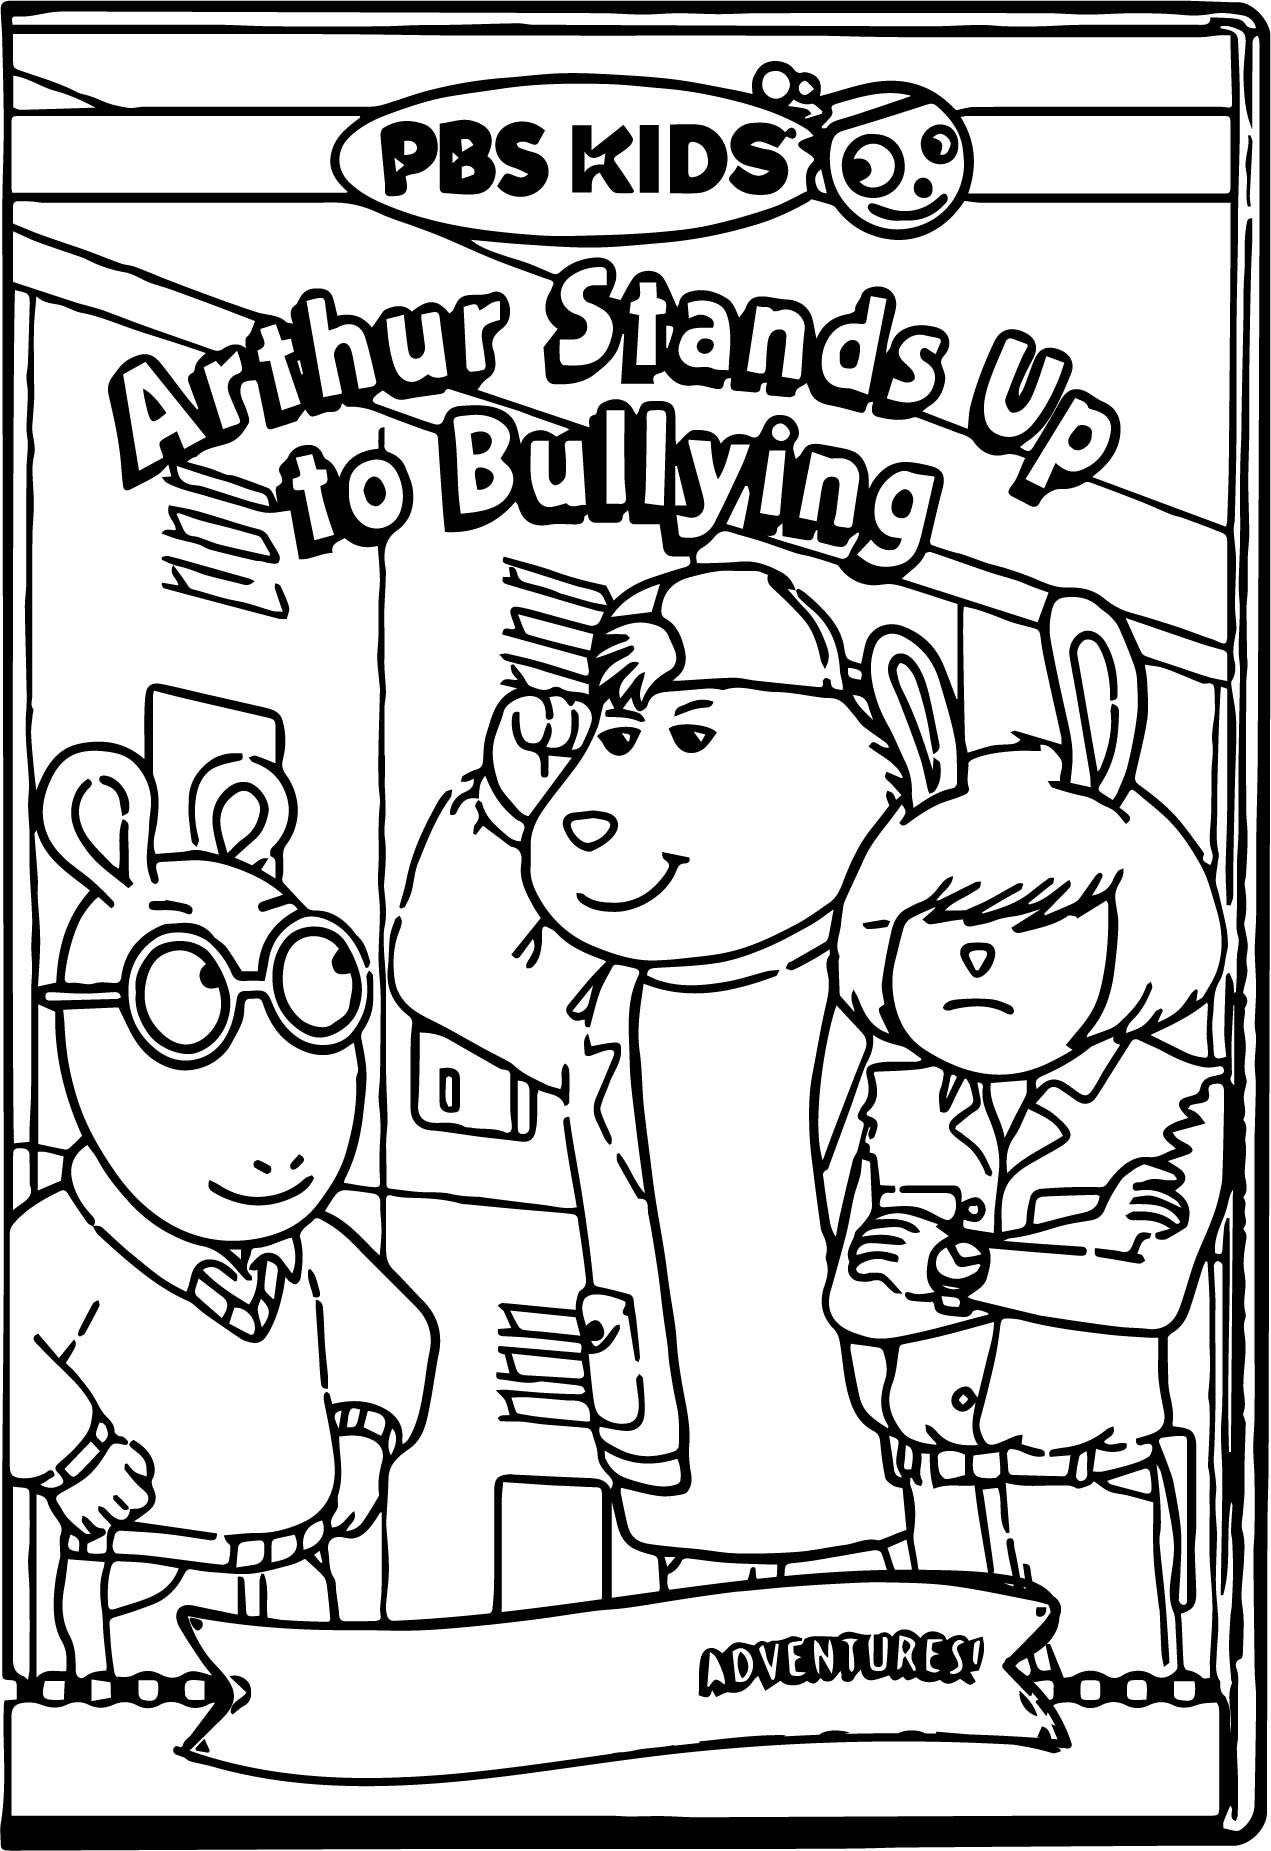 Arthur pbs kids coloring pages for Pbskids coloring pages